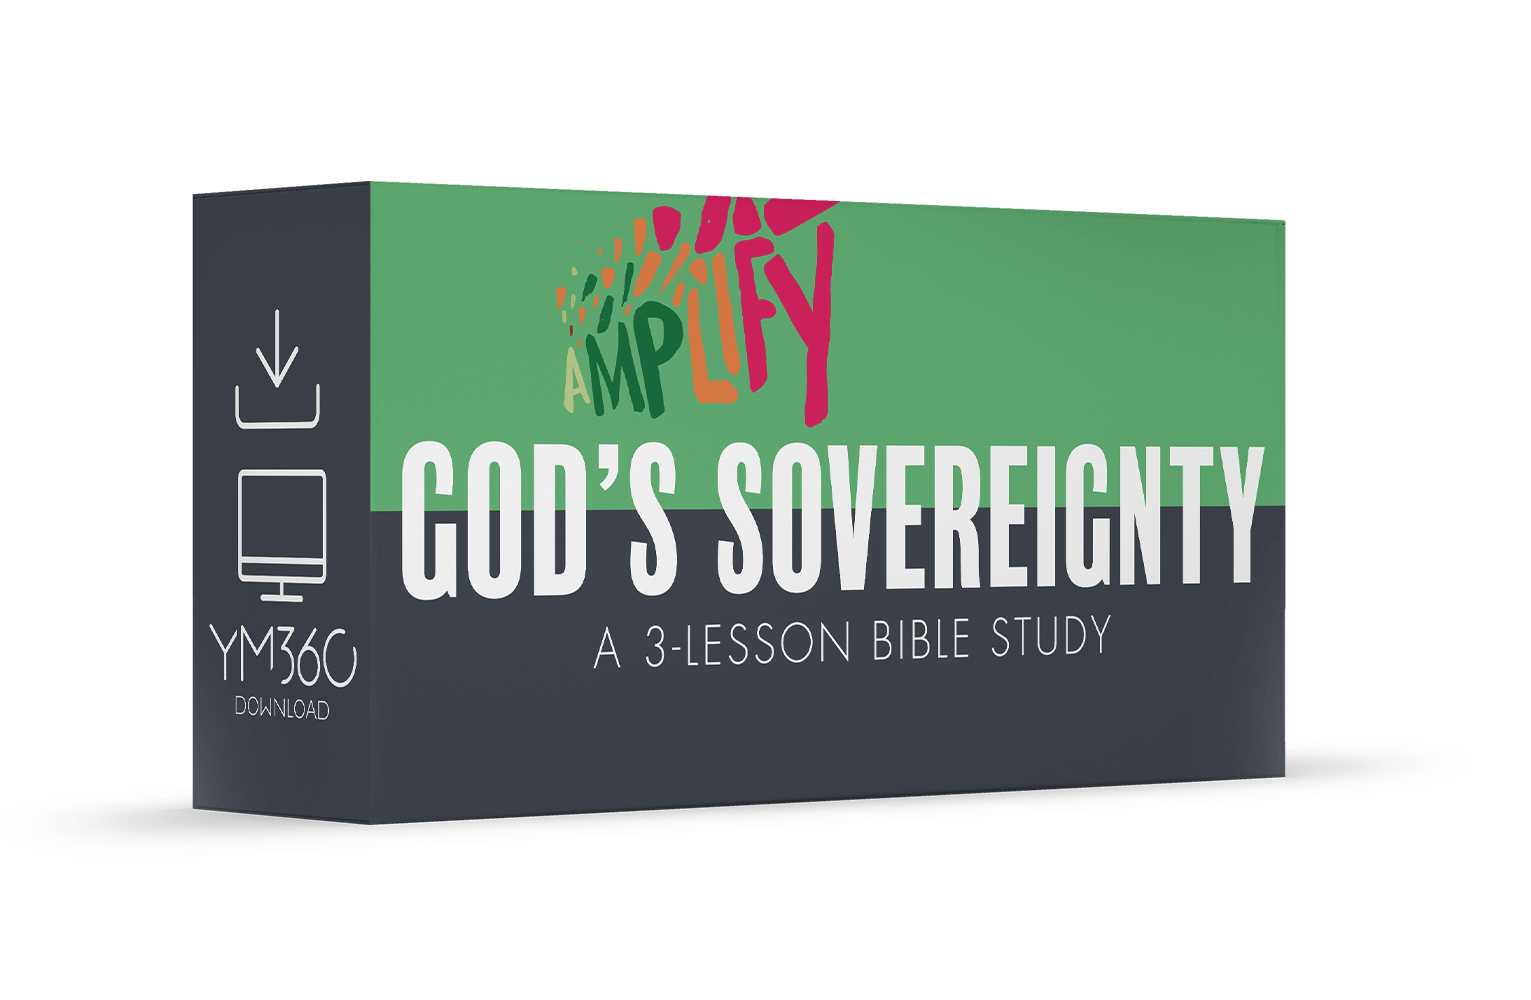 God's Sovereignty: A 3-Lesson Bible Study